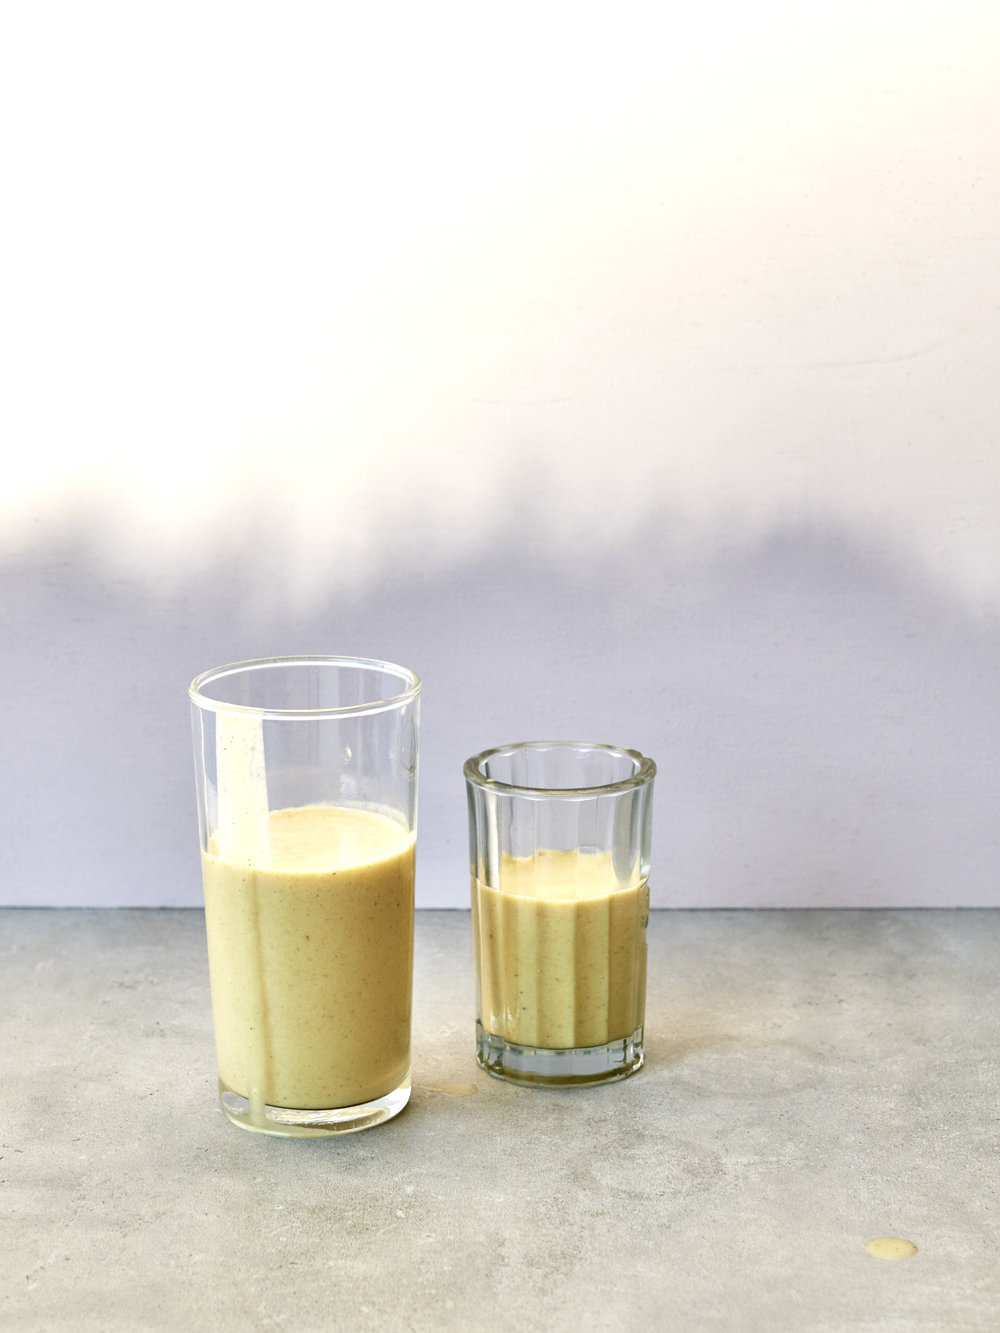 Golden Mylk Smoothie // Kenkō Kitchen. Photography by  Elisa Watson , styling by Kate Bradley (Kenkō Kitchen).